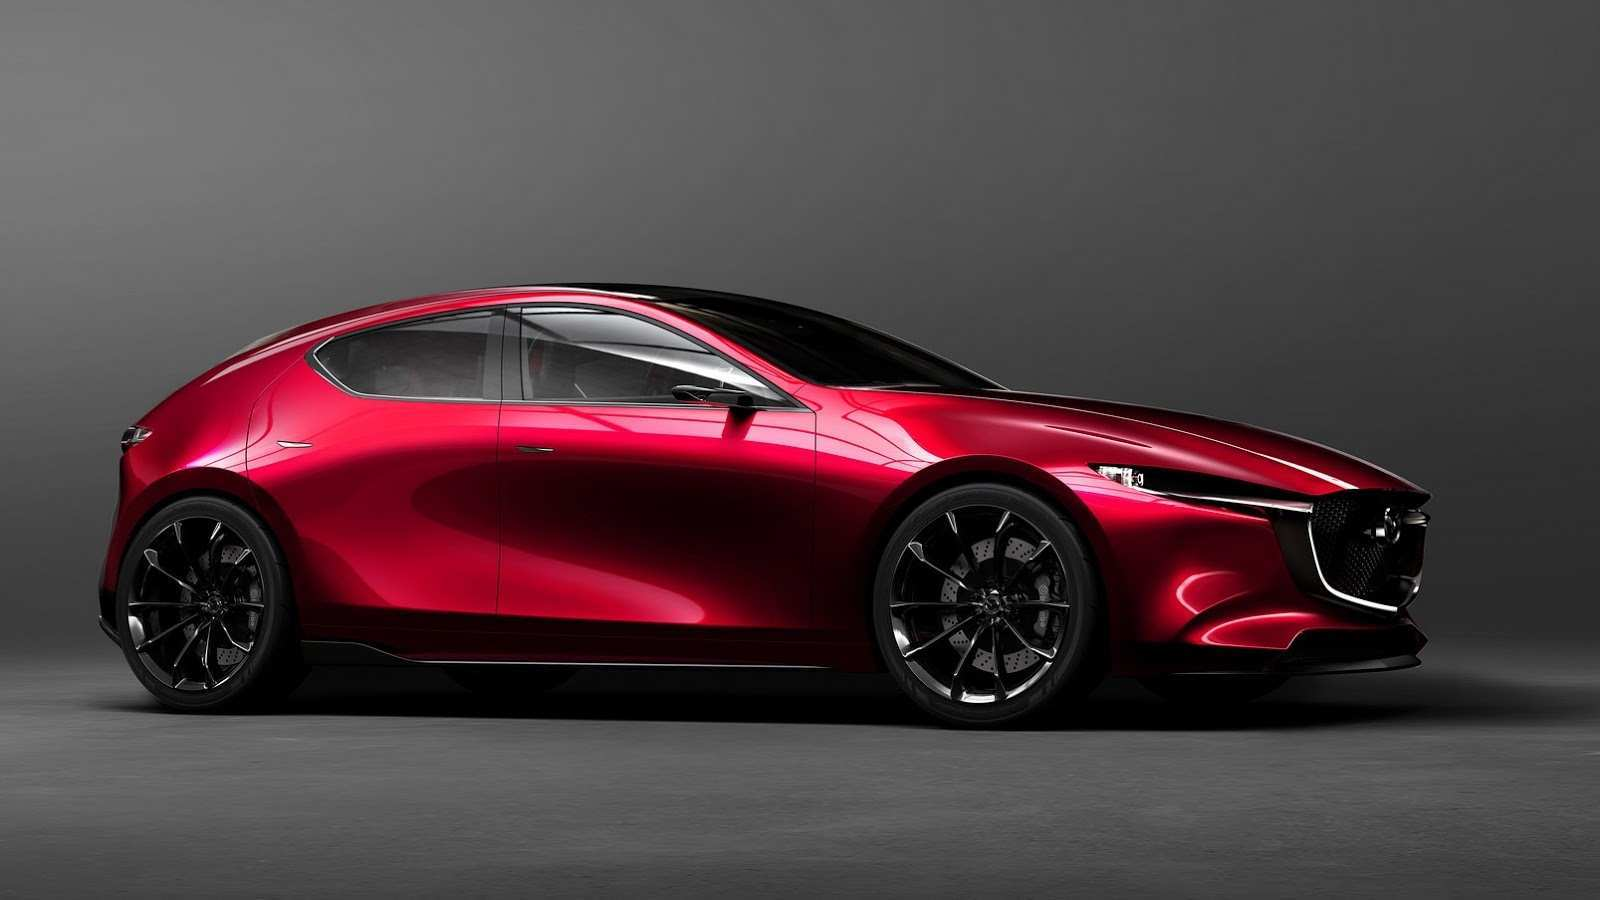 42 Gallery of Best Mazda Sport 2019 Exterior Research New for Best Mazda Sport 2019 Exterior